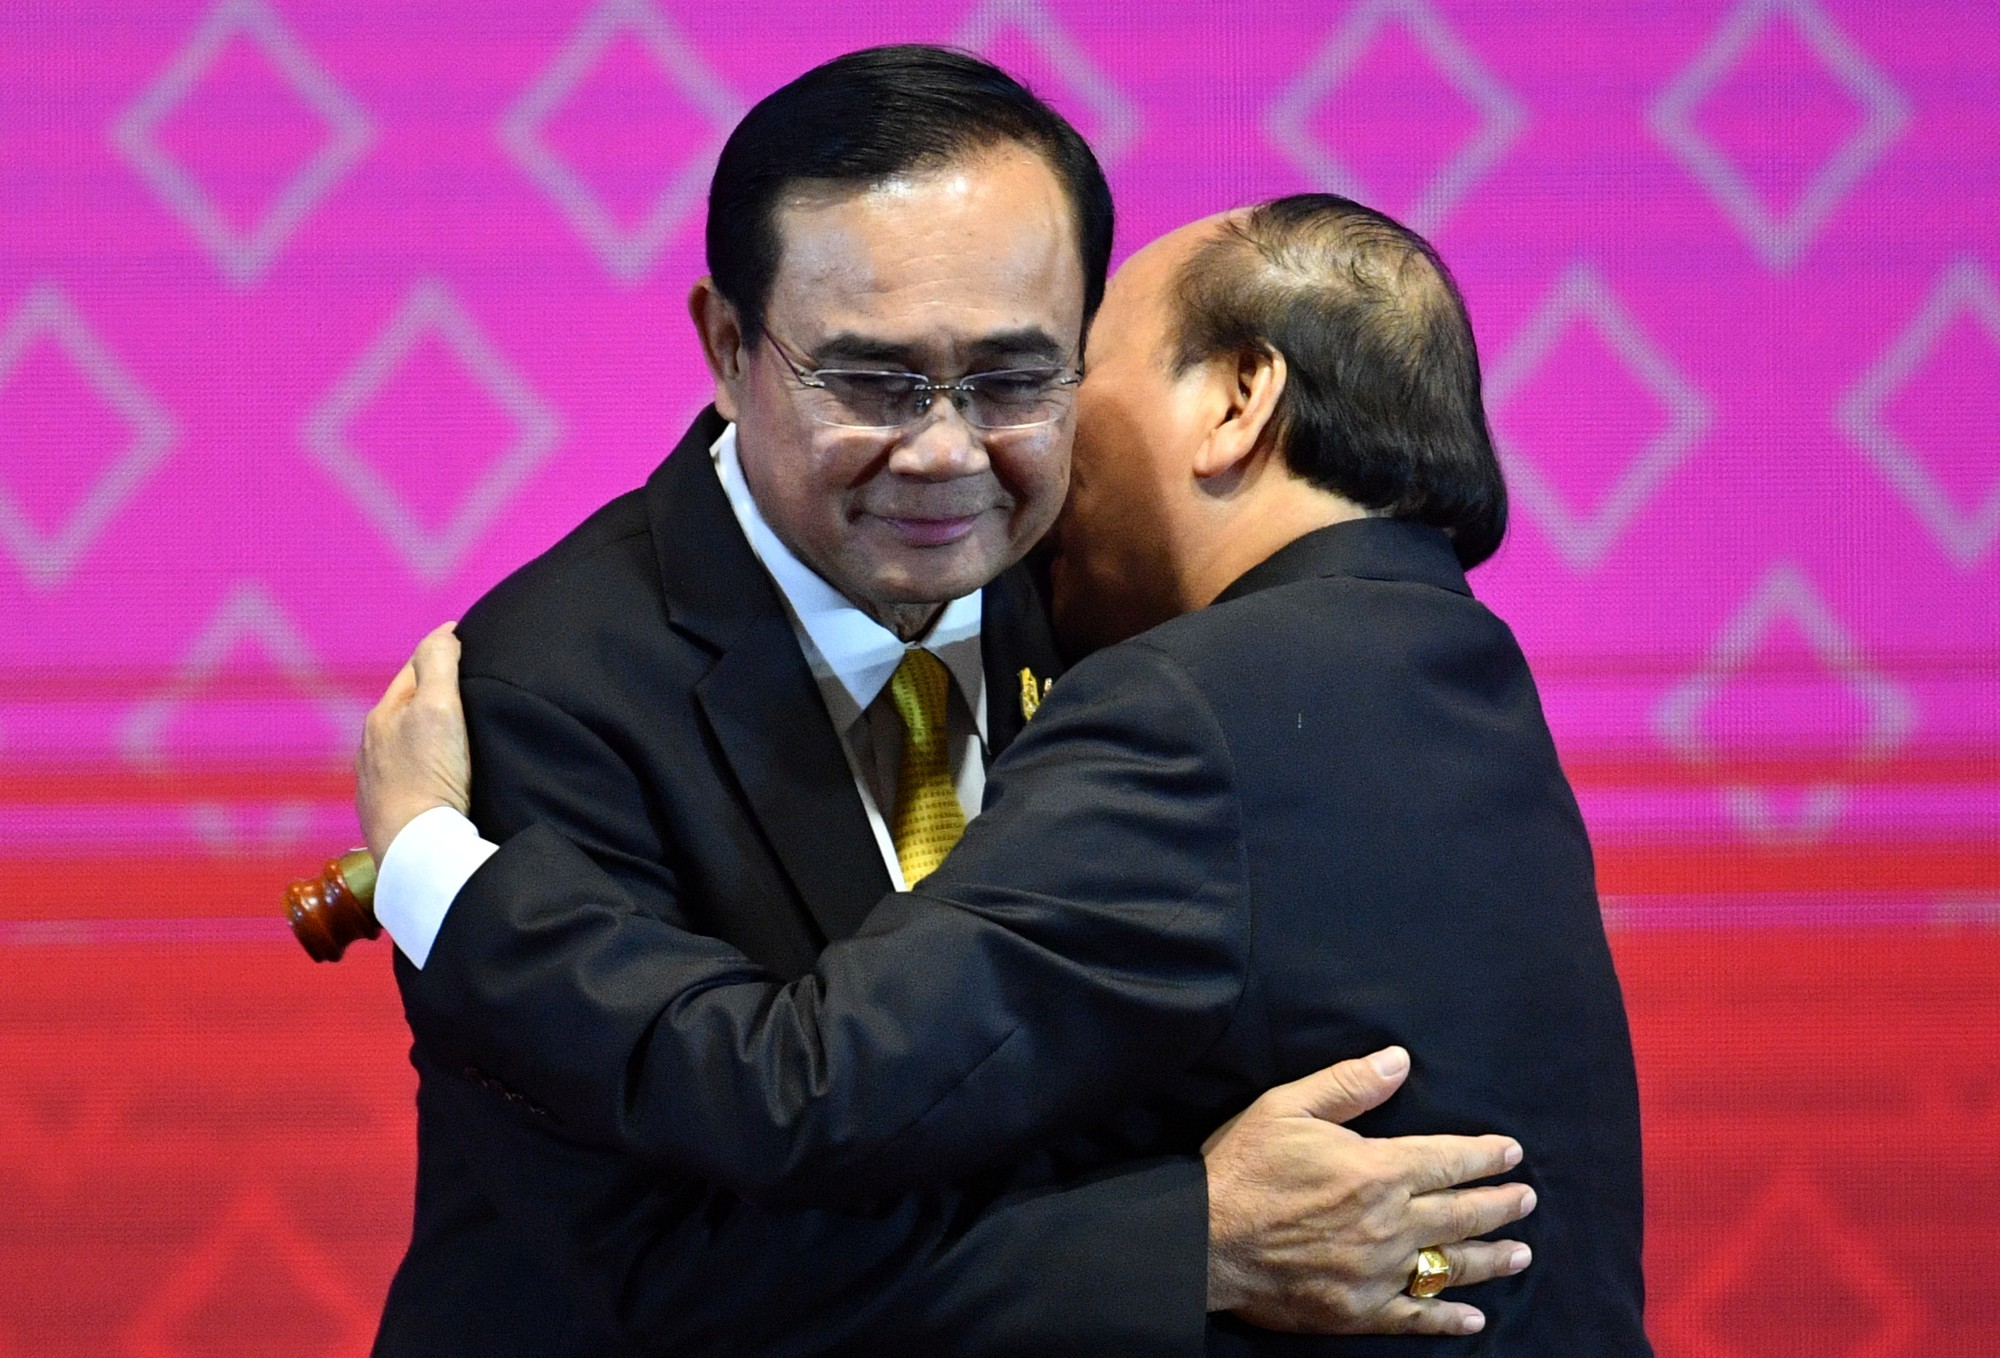 Vietnamese PM Nguyen Xuan Phuc and Thai PM Prayut Chan-o-cha. Photo: Reuters